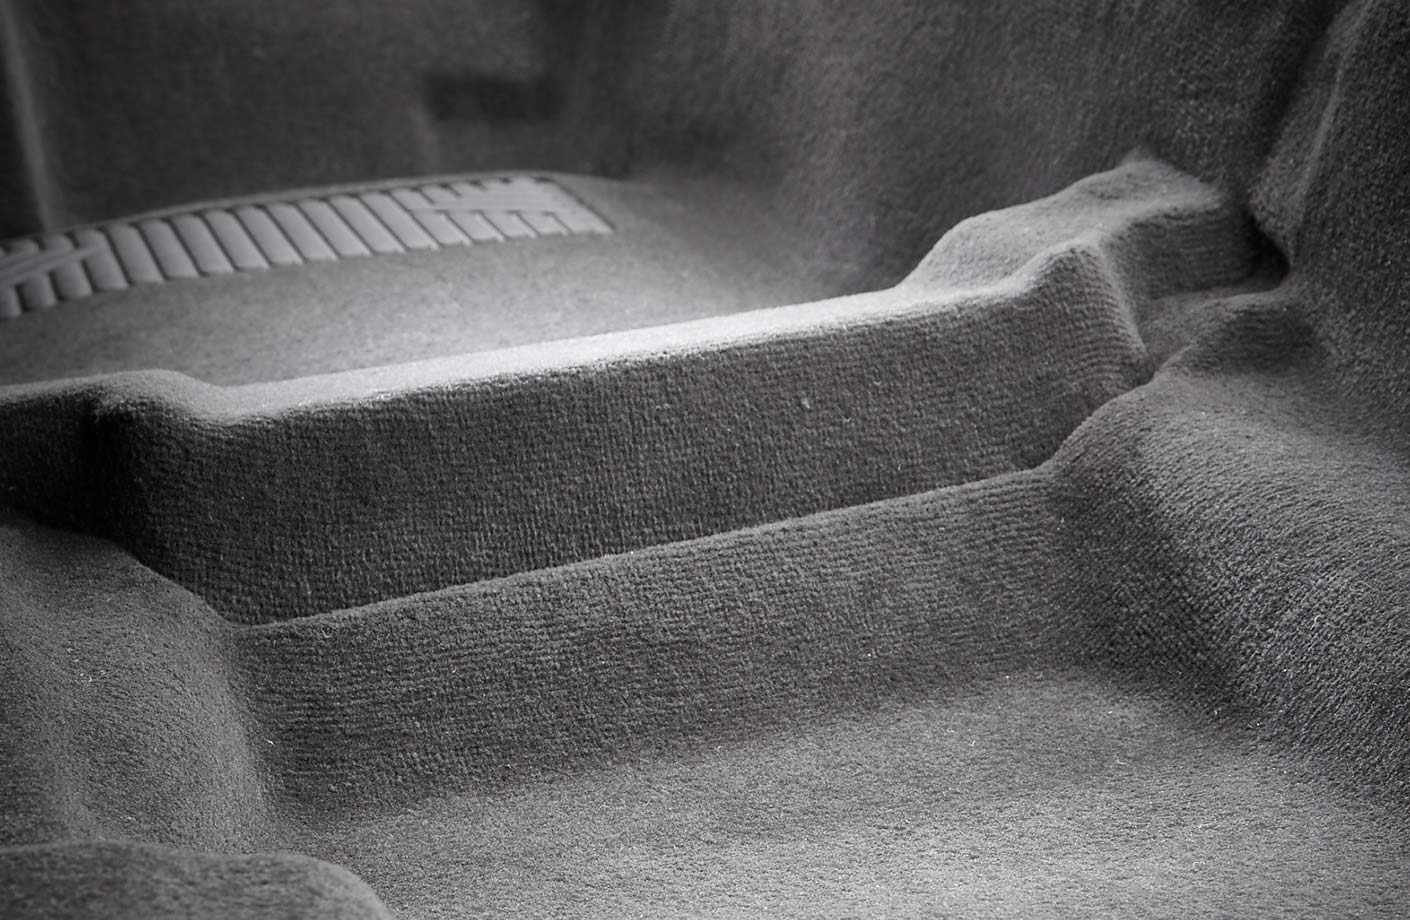 Primary backing for car carpets